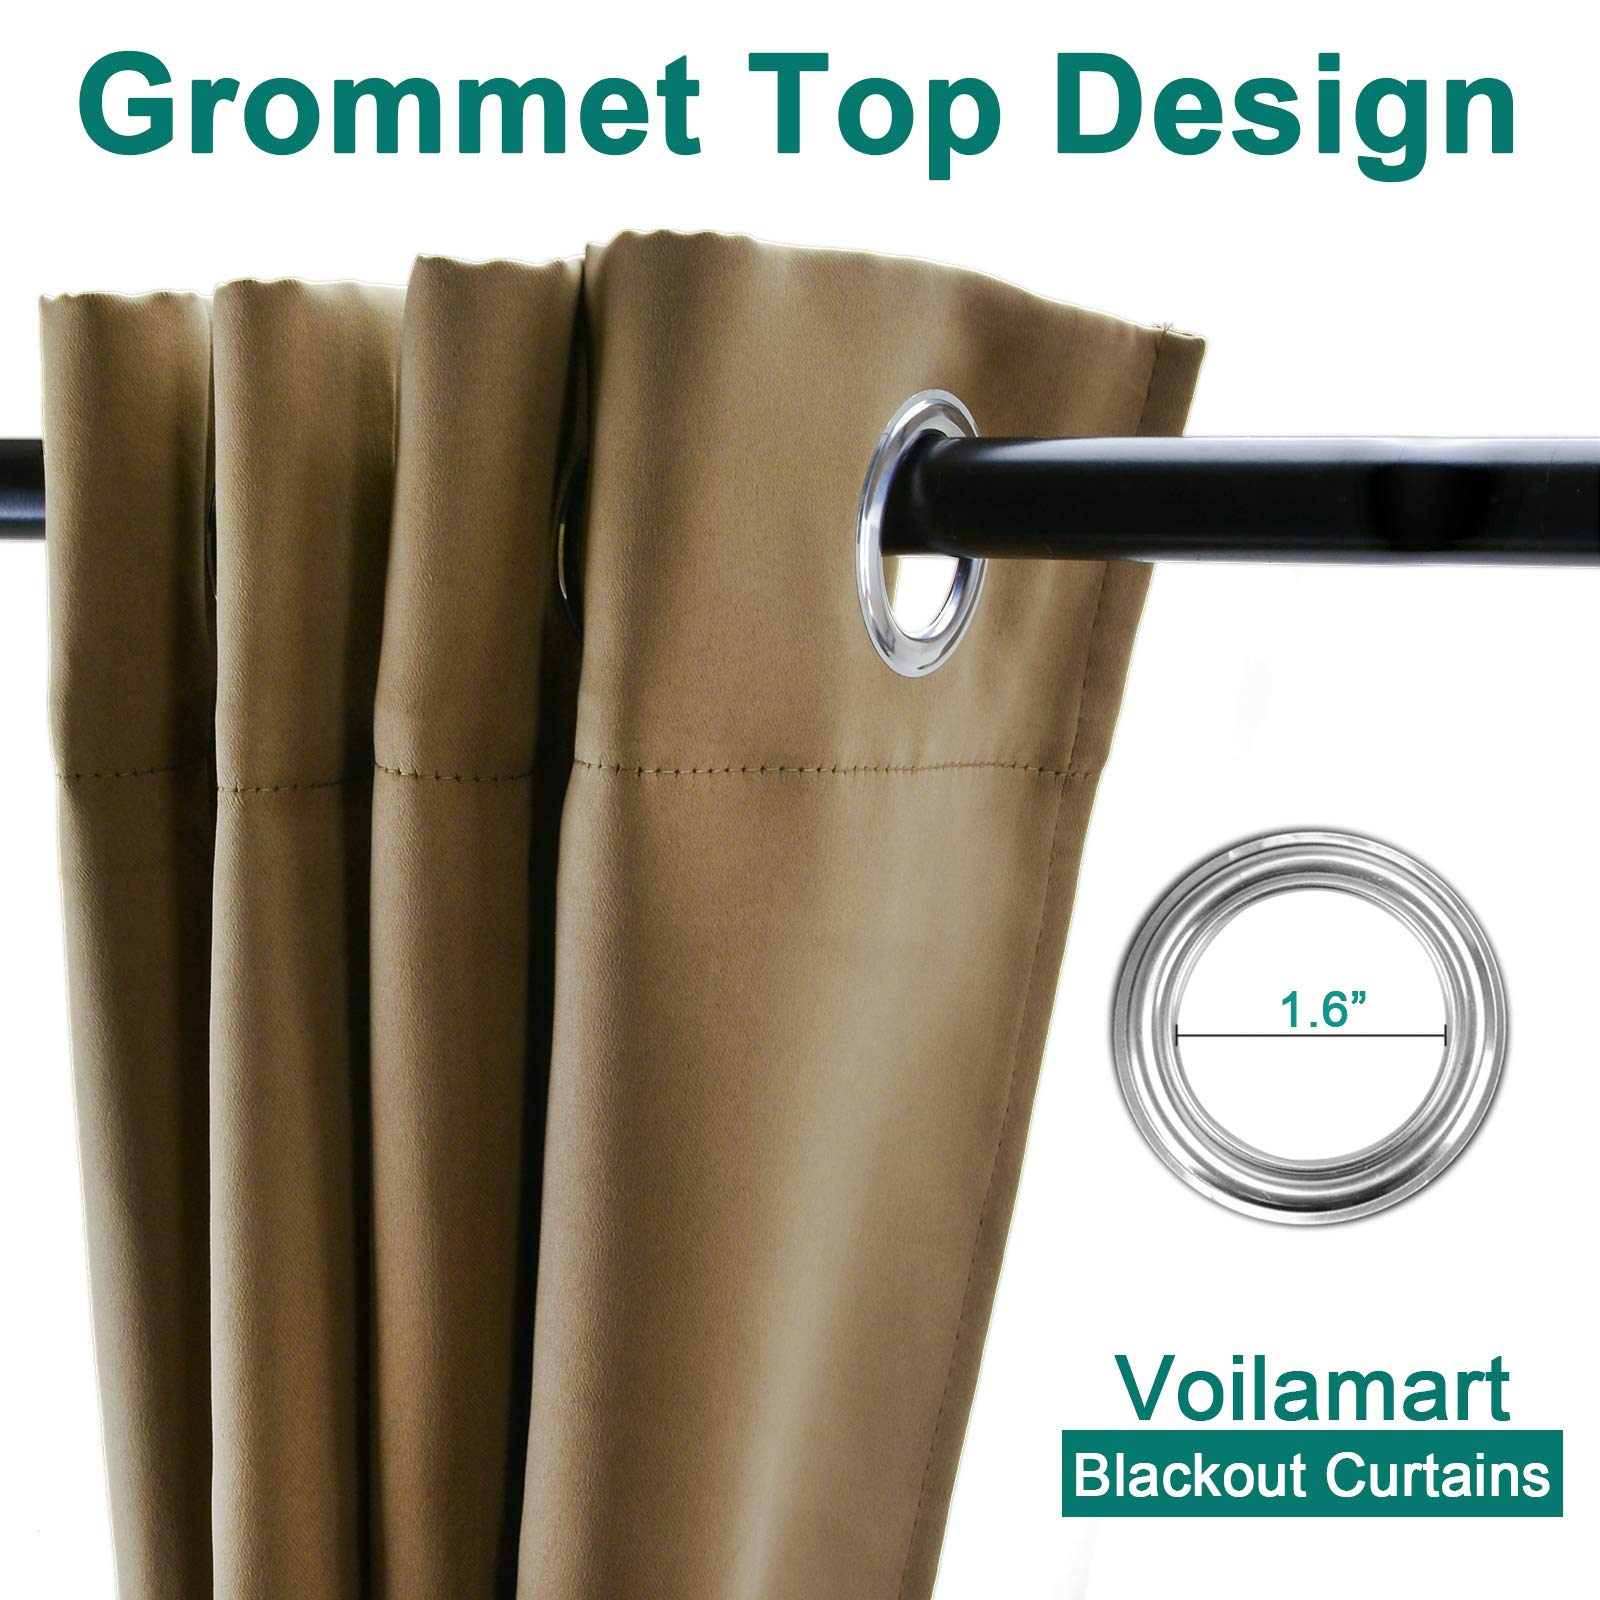 Voilarmart Blackout Curtains 95 x 84 Thermal Insulated Light Reducing Grommet Top Window Curtain for Bedroom, Living Room, 1 Panel - Khaki